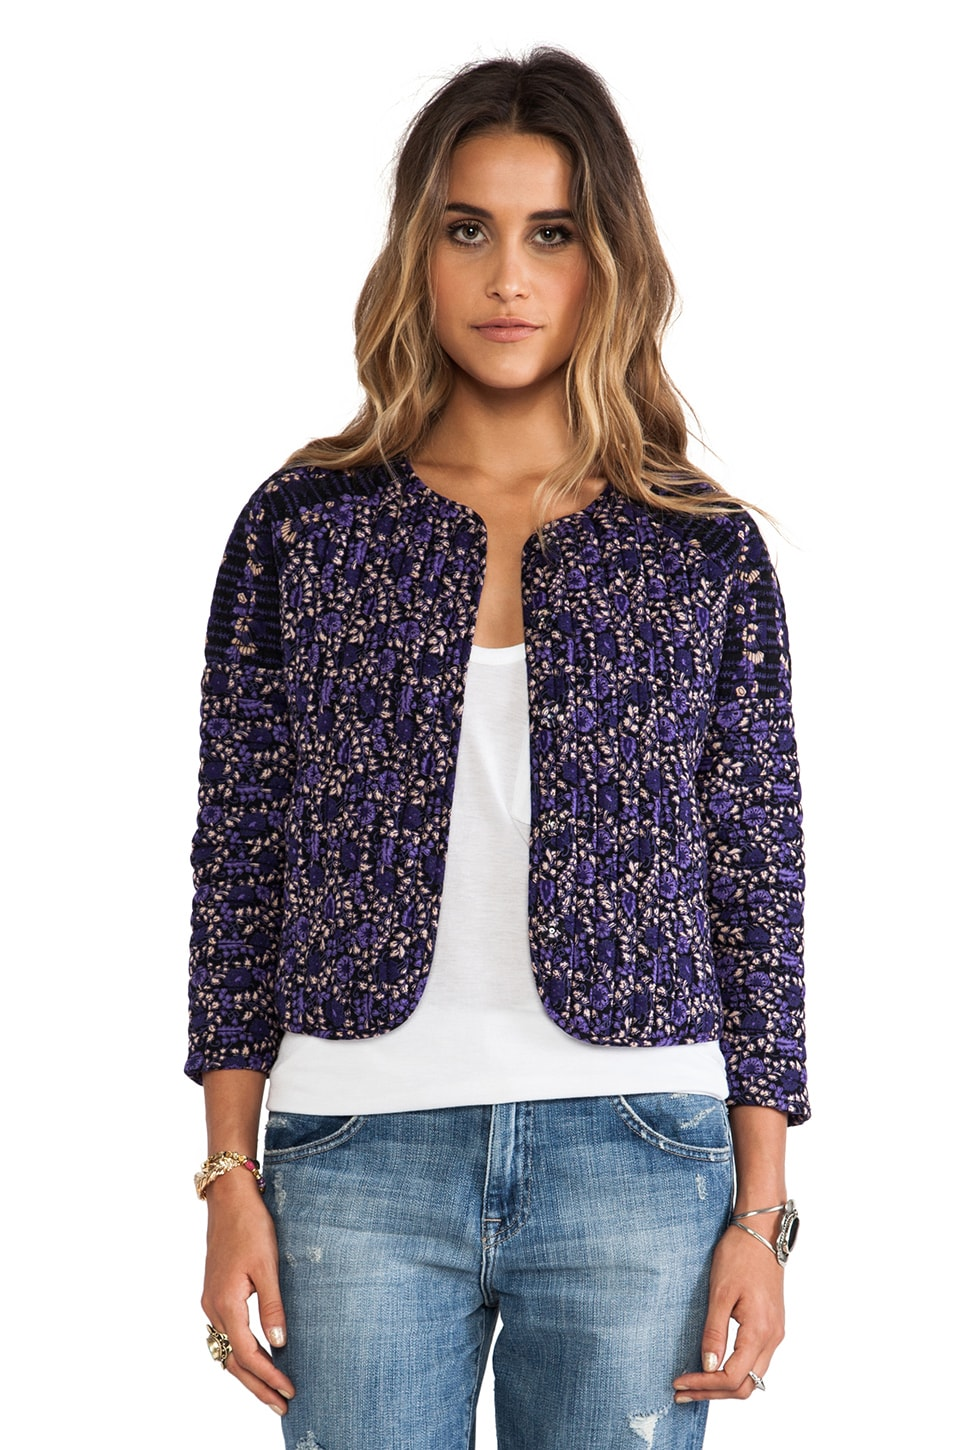 Ulla Johnson Casbah Jacket in Eclipse